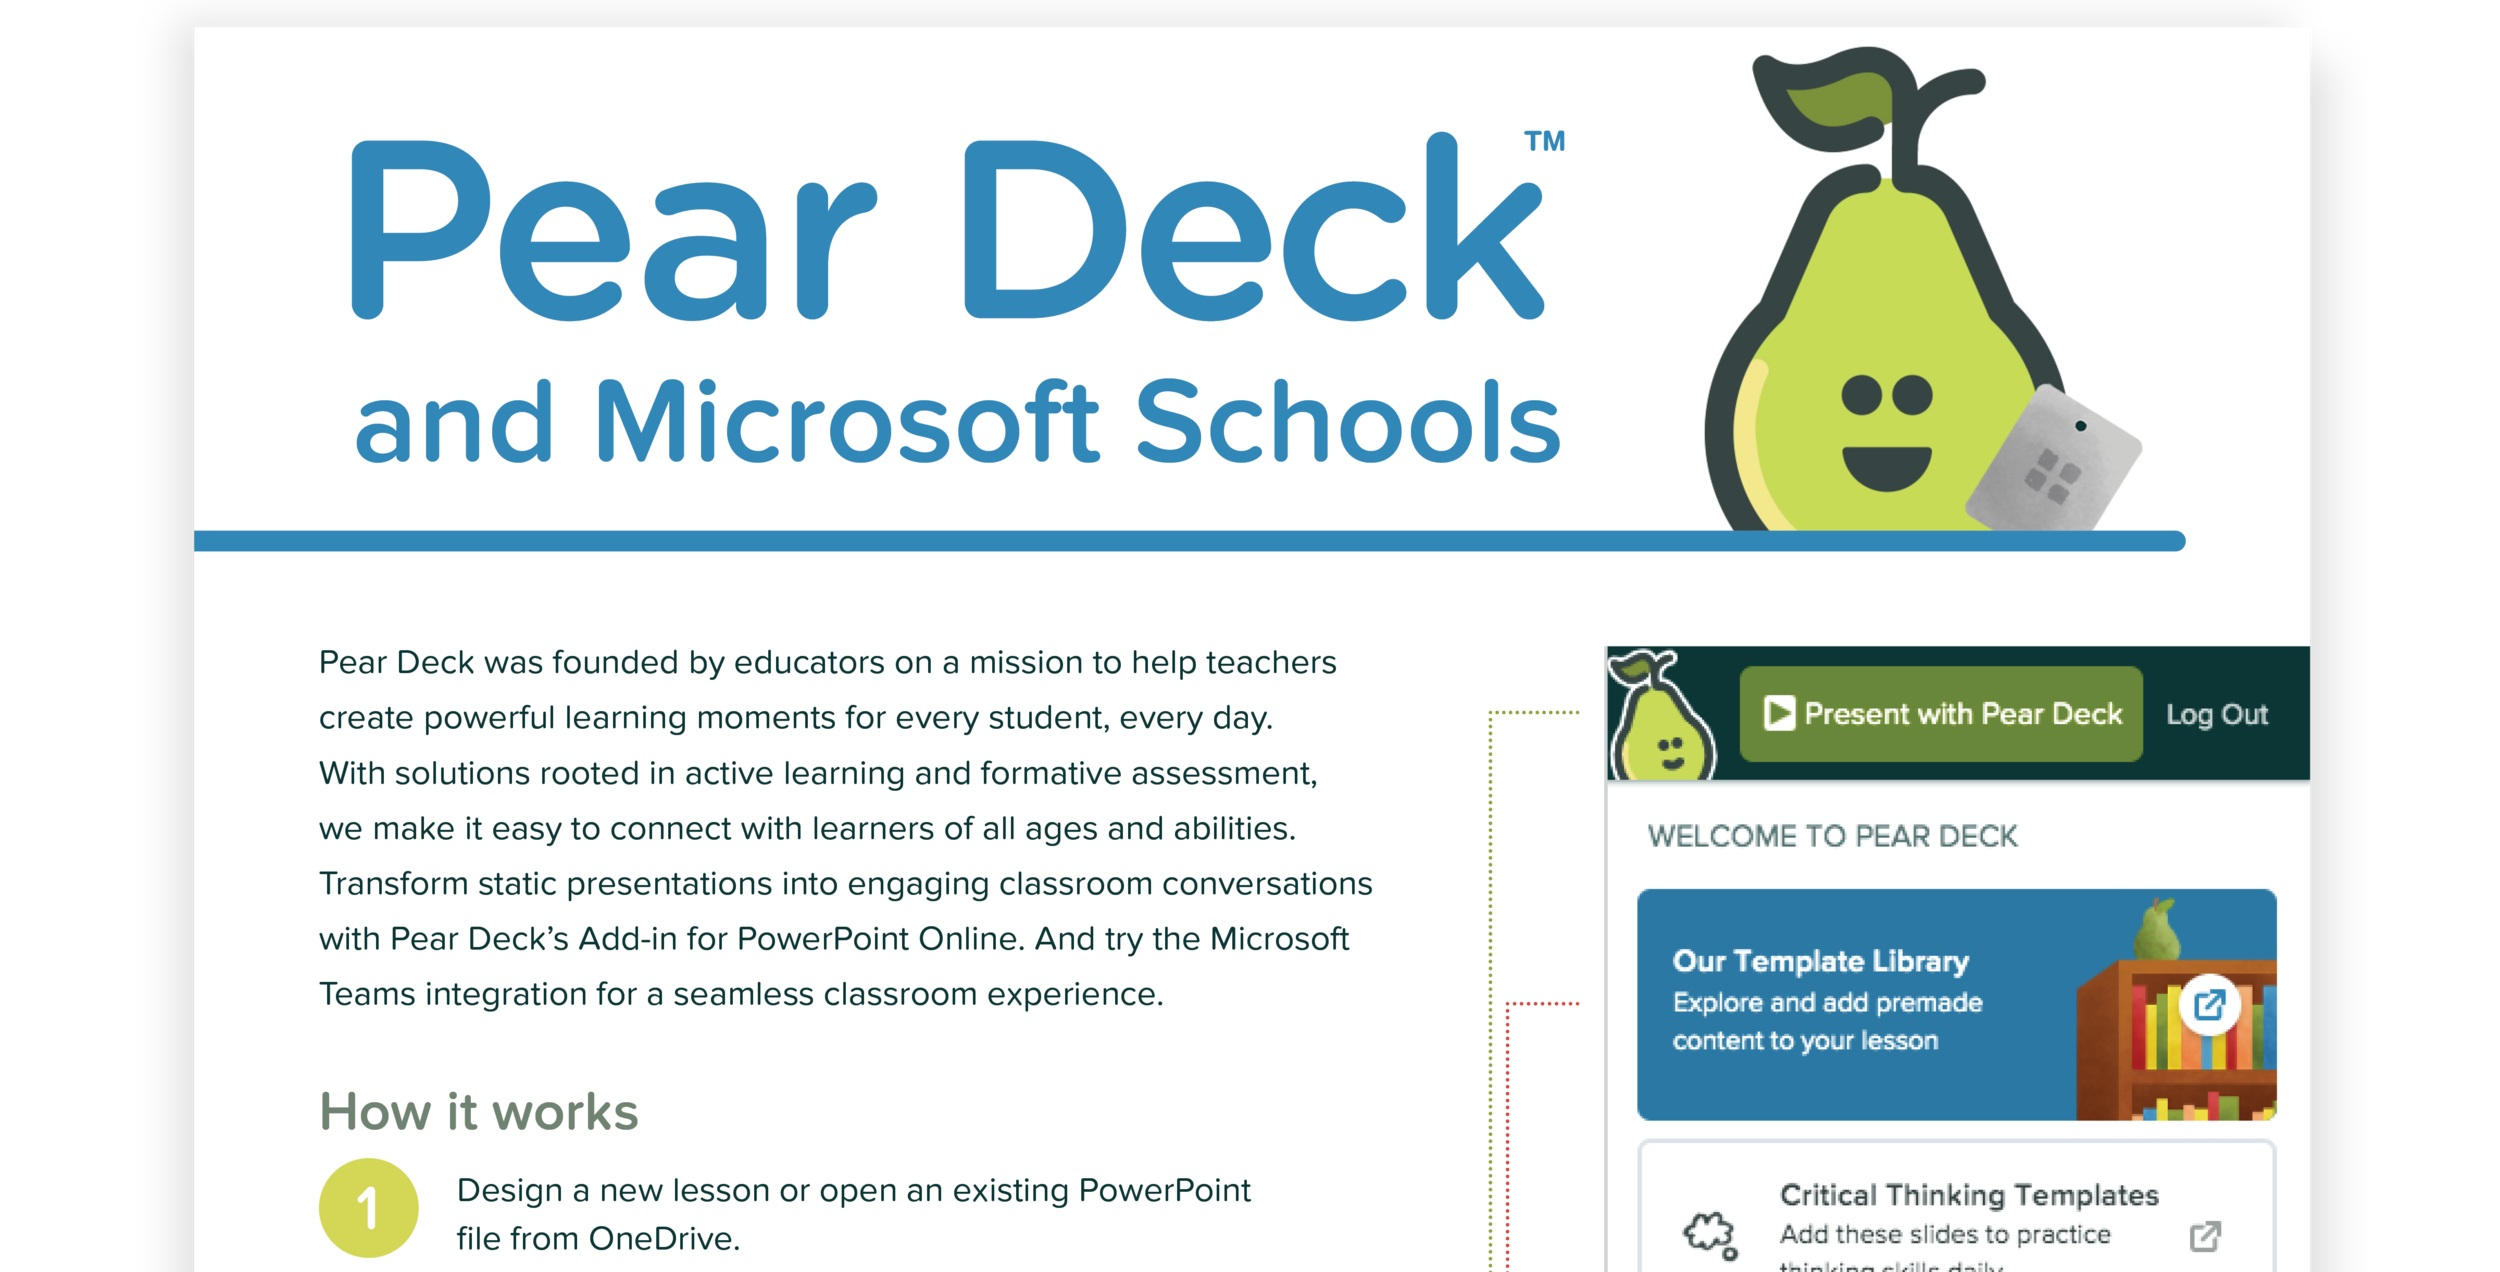 Pear Deck and Microsoft Schools One Pager